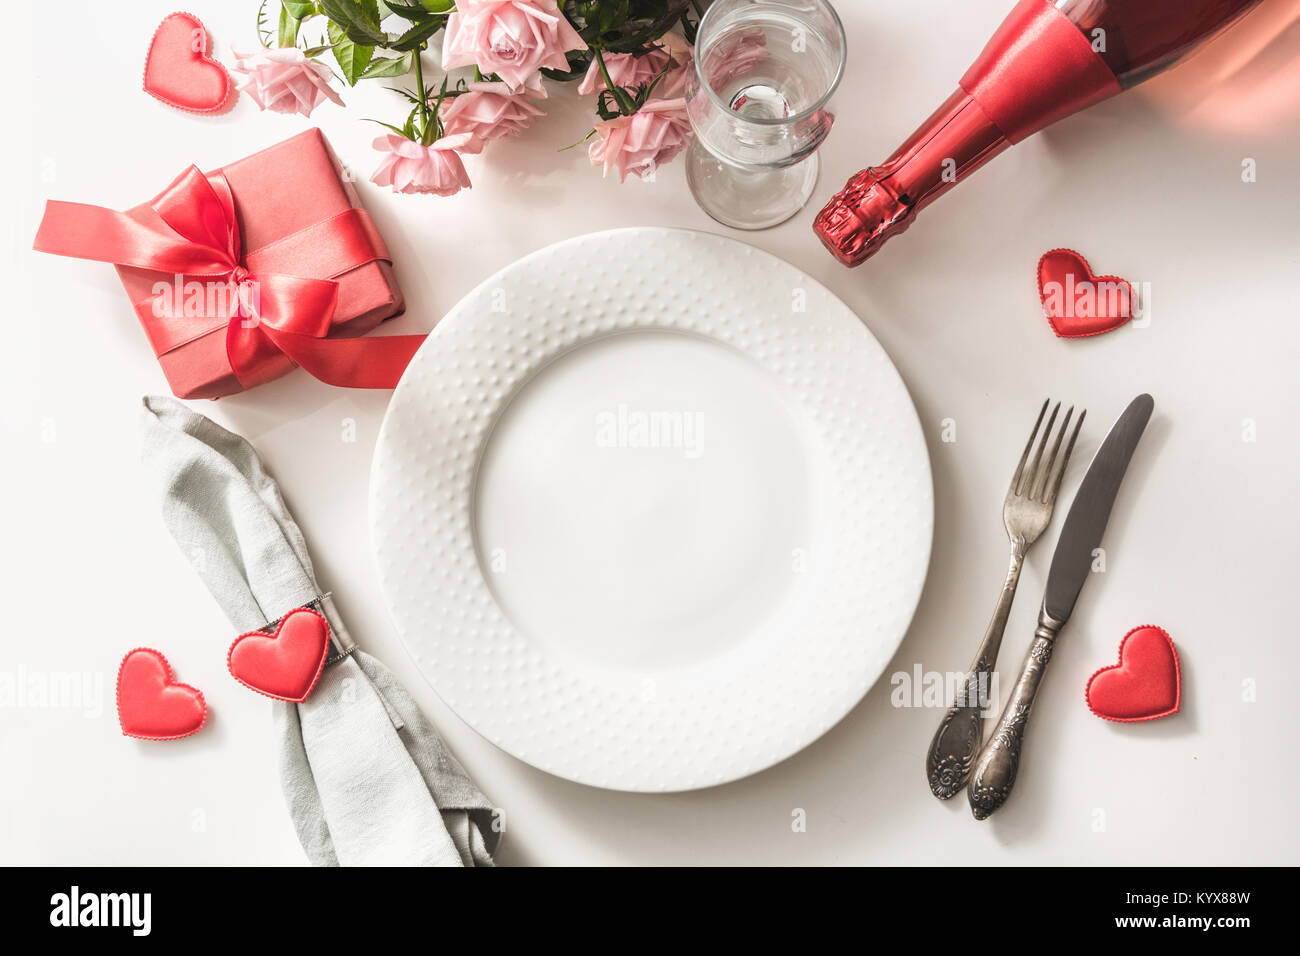 Valentines day dinner with table place setting with red gift glass for ch&agne a bottle of ch&agne pink roses hearts with silverware on white & Valentines day dinner with table place setting with red gift glass ...